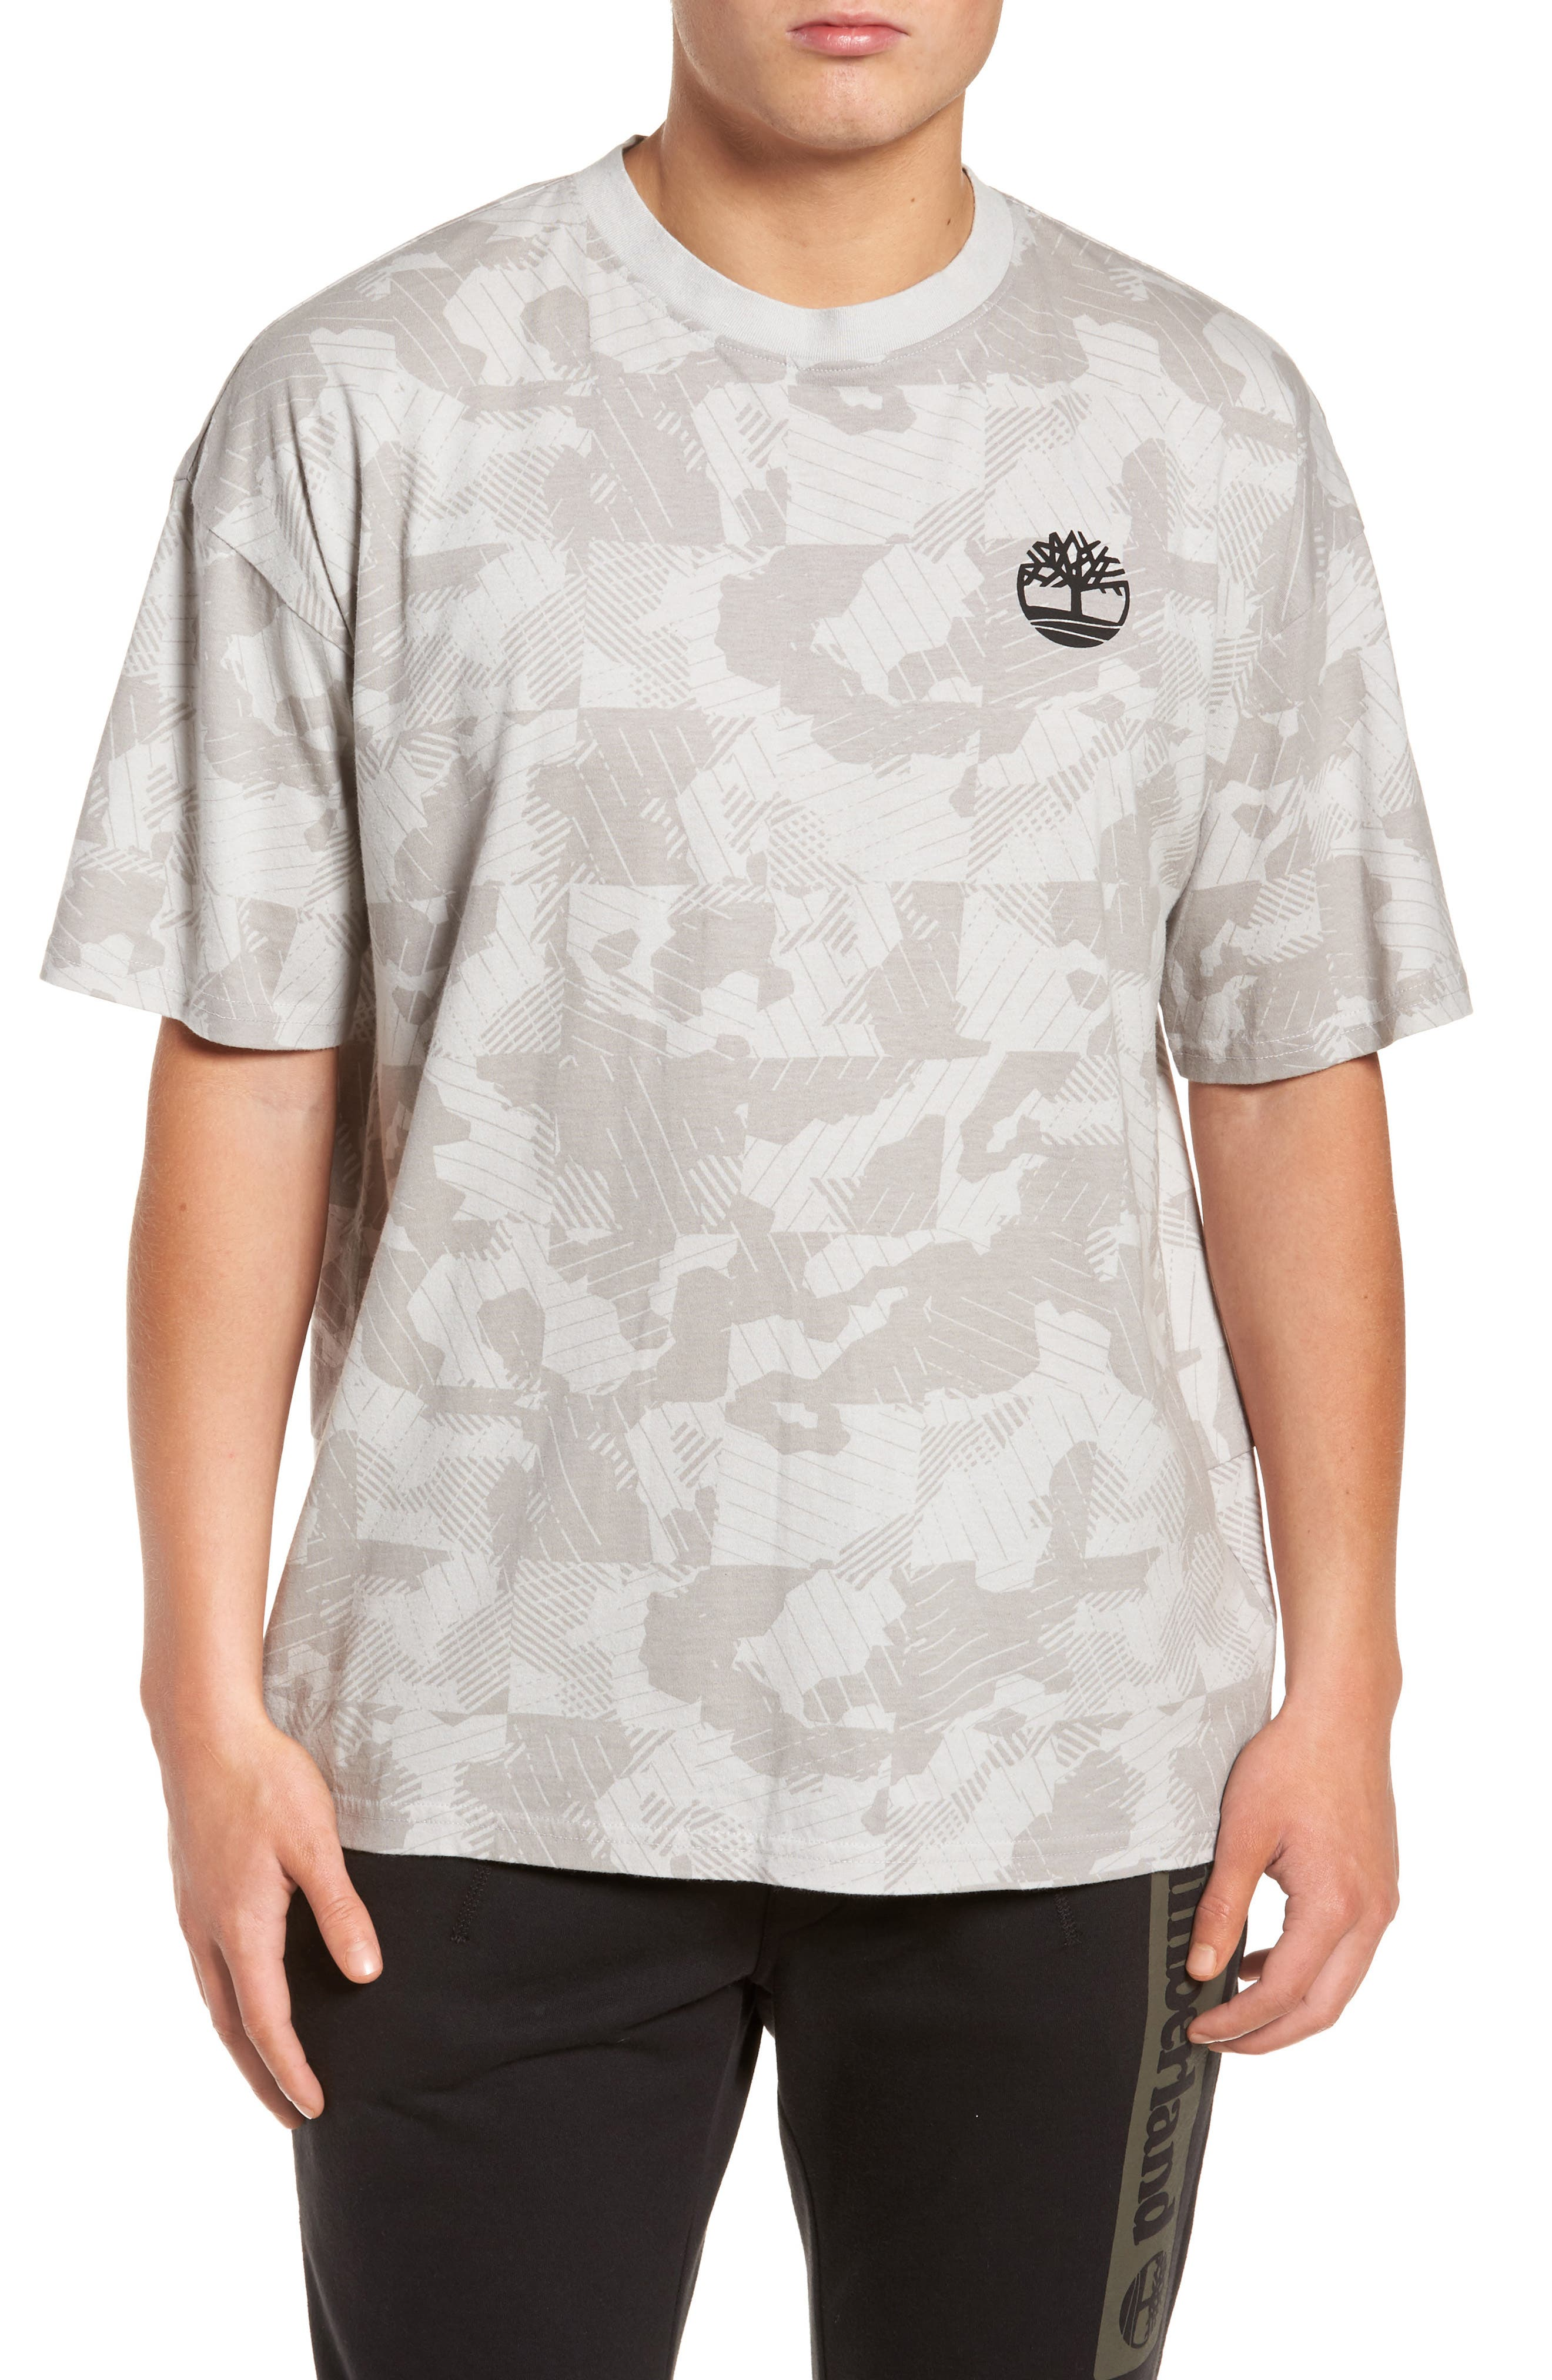 Disruptive Crewneck T-Shirt,                         Main,                         color, Micro Chip Camo